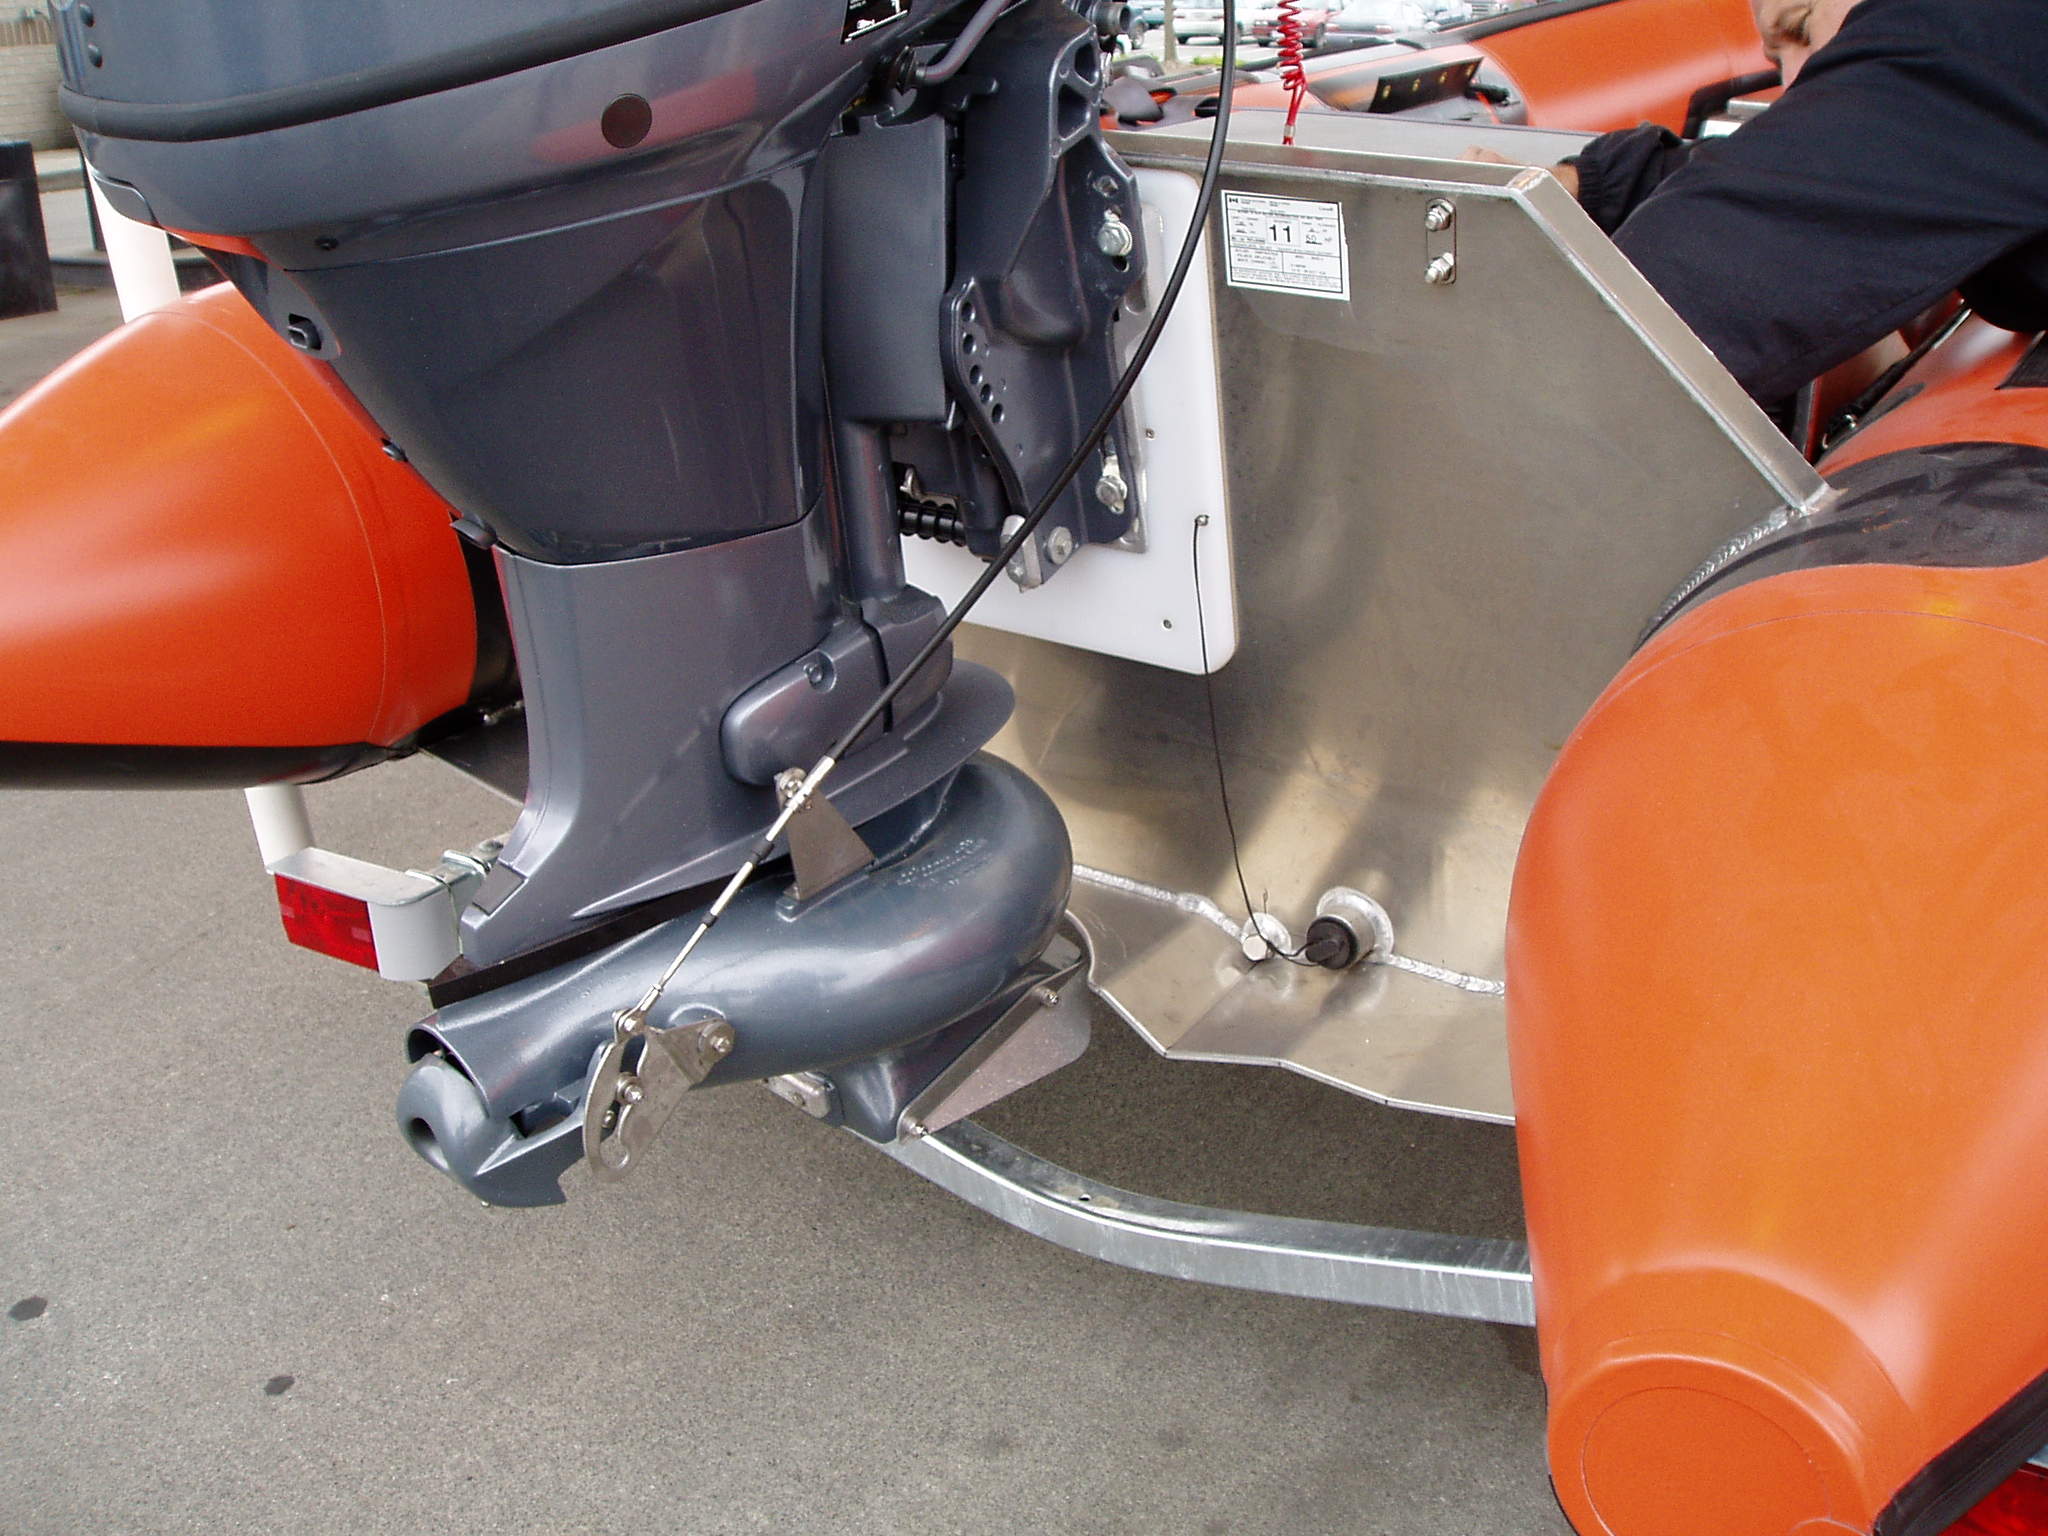 Inboard Outboard Jet Boats For Sale In Canada Polaris